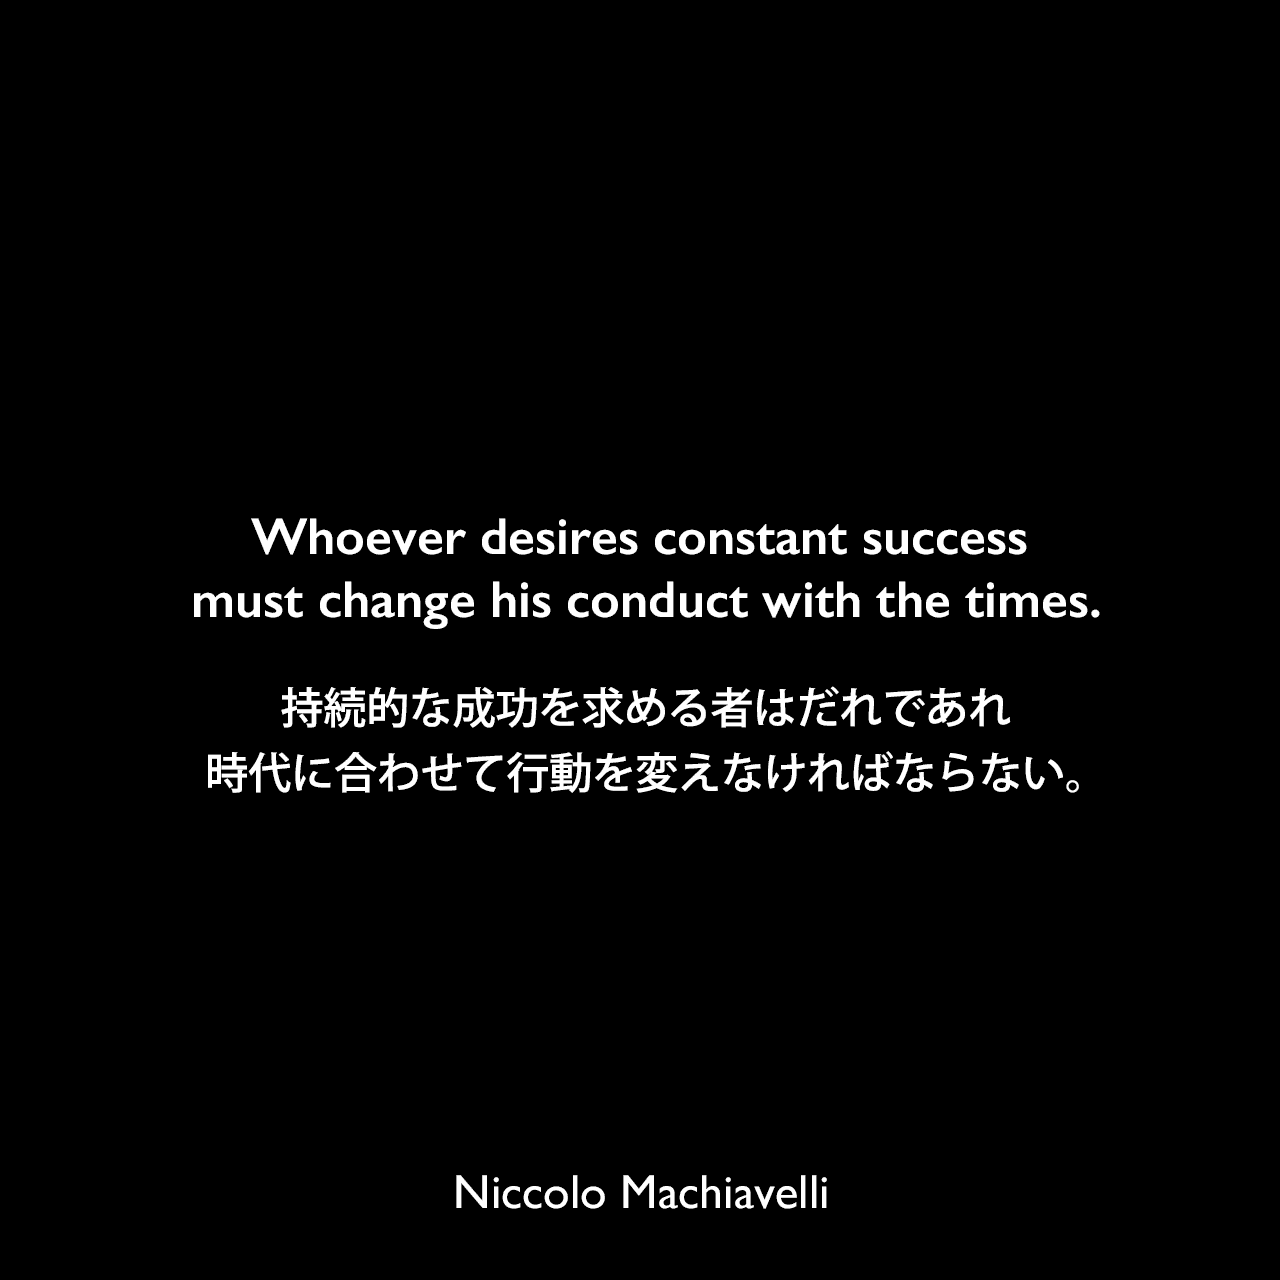 Whoever desires constant success must change his conduct with the times.持続的な成功を求める者はだれであれ、時代に合わせて行動を変えなければならない。Niccolo Machiavelli